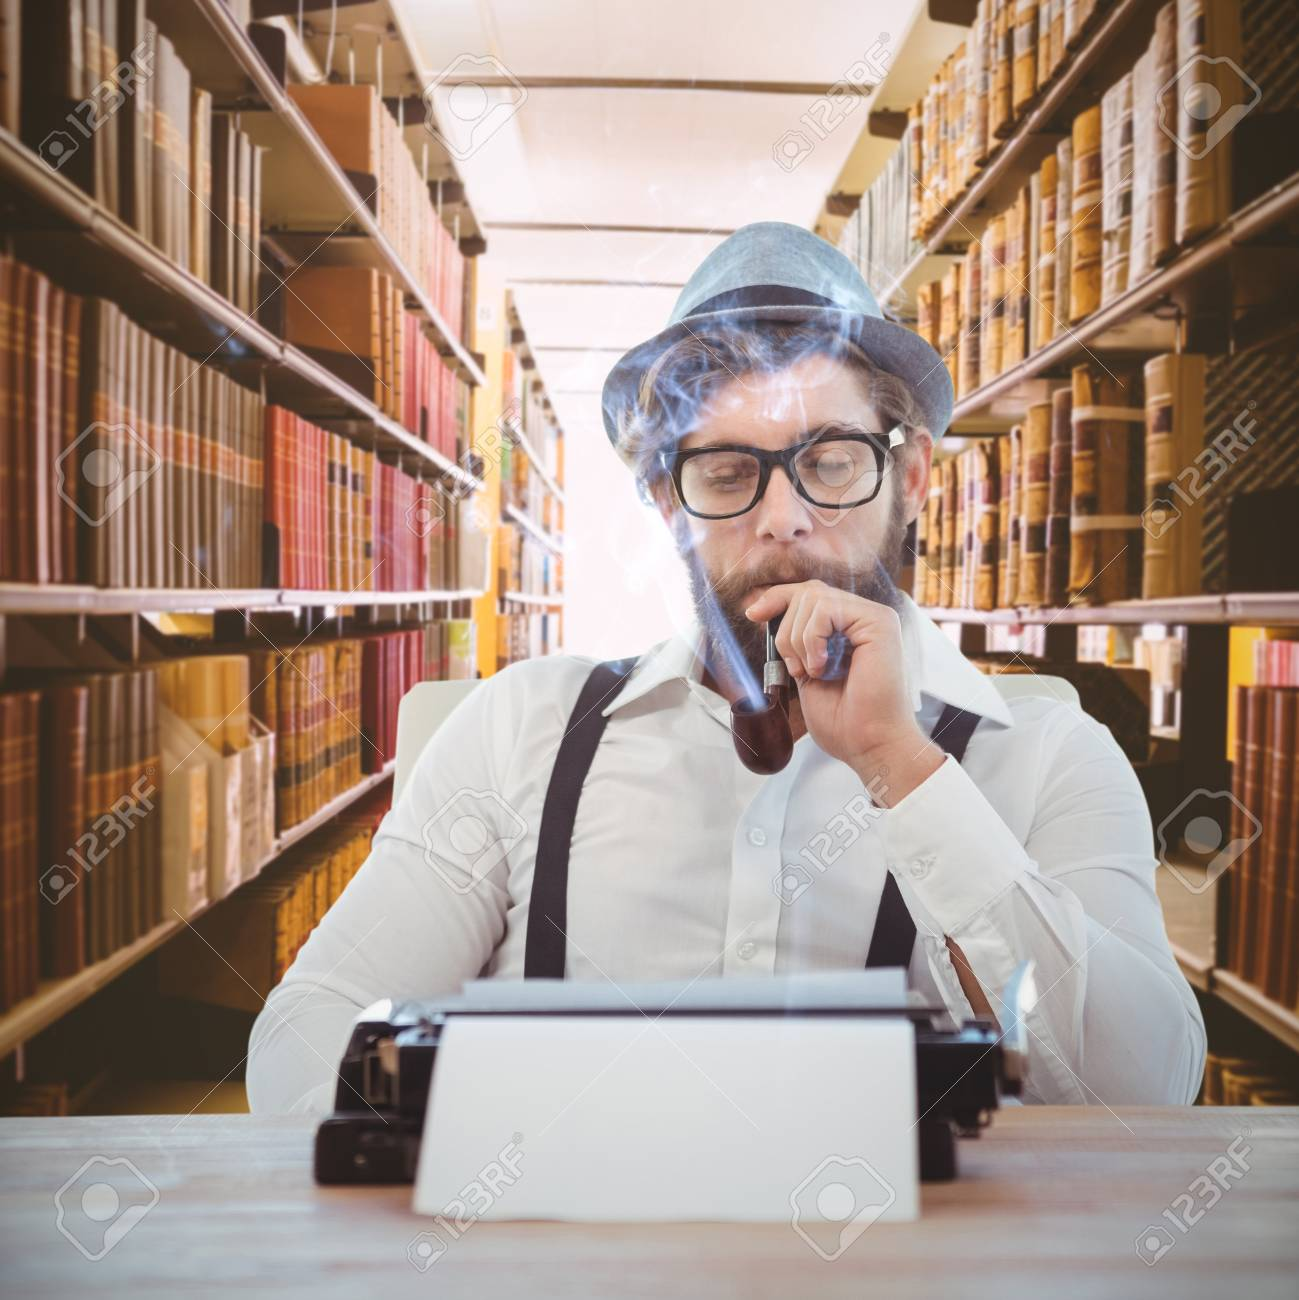 Hipster Smoking Pipe While Sitting Looking At Typewriter Against Close Up Of A Bookshelf Stock Photo